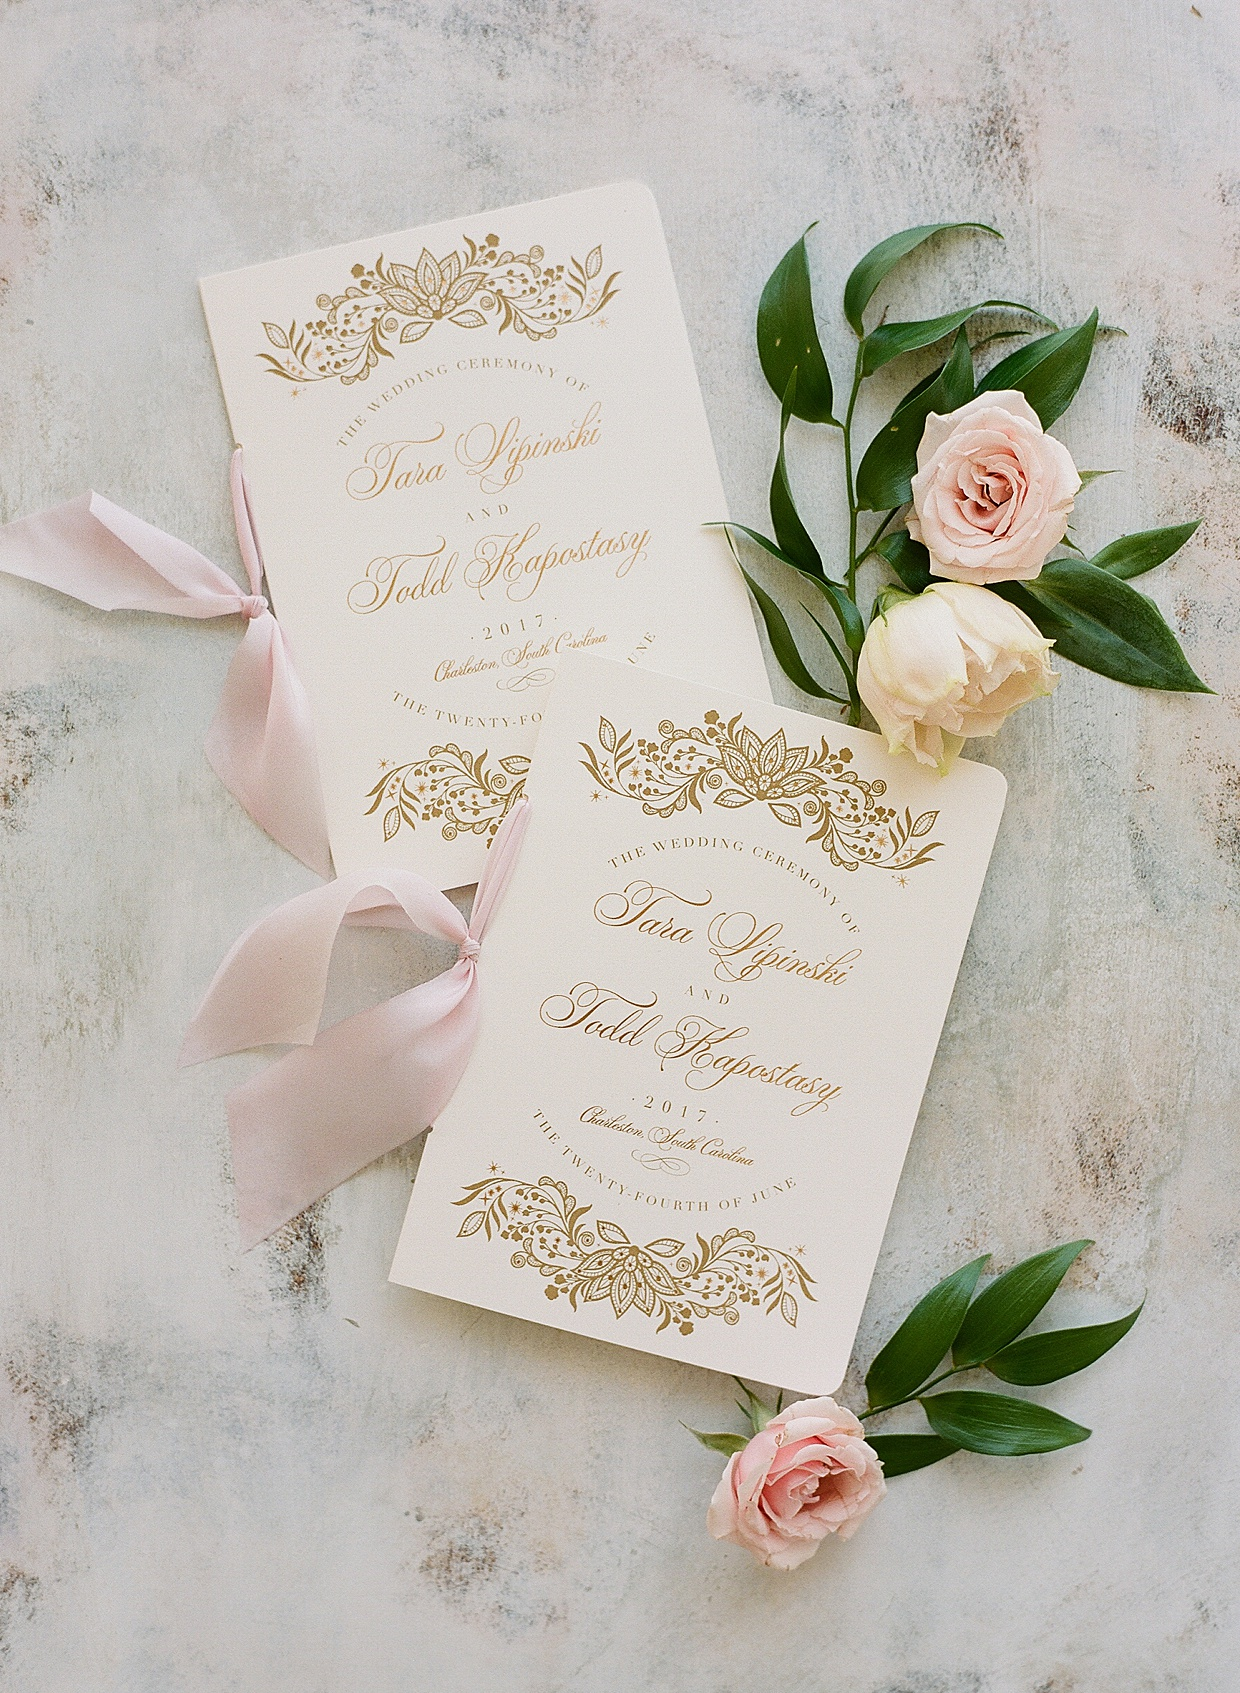 Jasmin Michelle Designs A Luxury Event Invitations And Brand